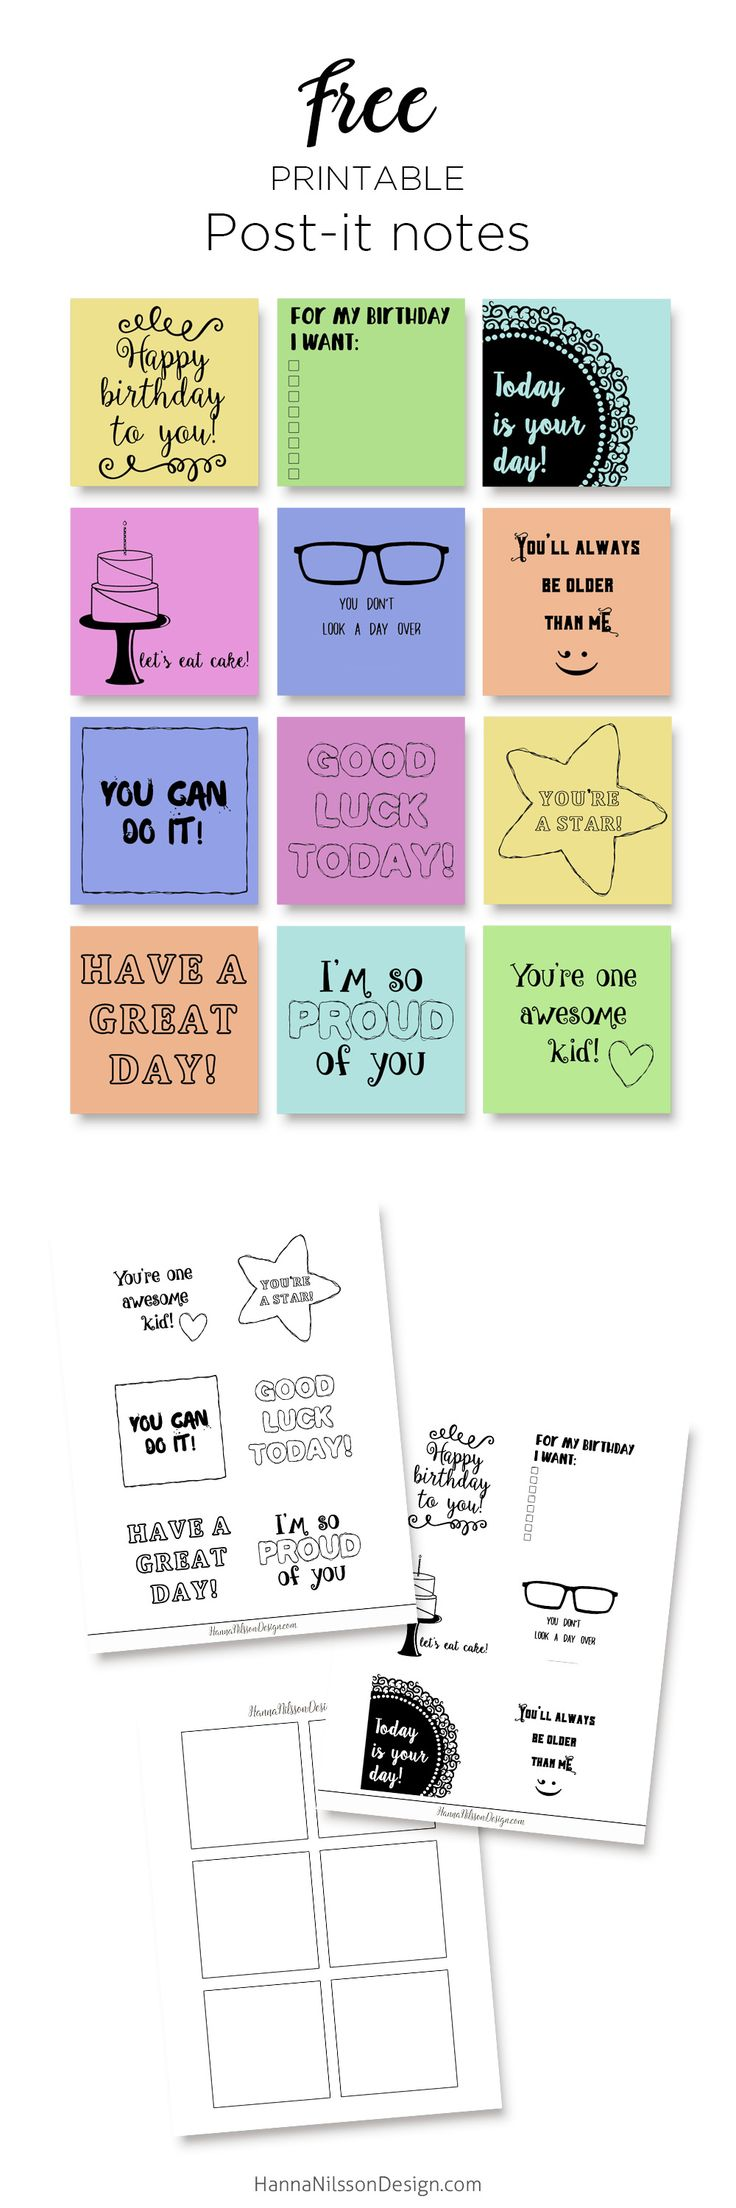 Free printable post-it notes with printing guide - birthday notes + lunch box notes for kids - sticky notes